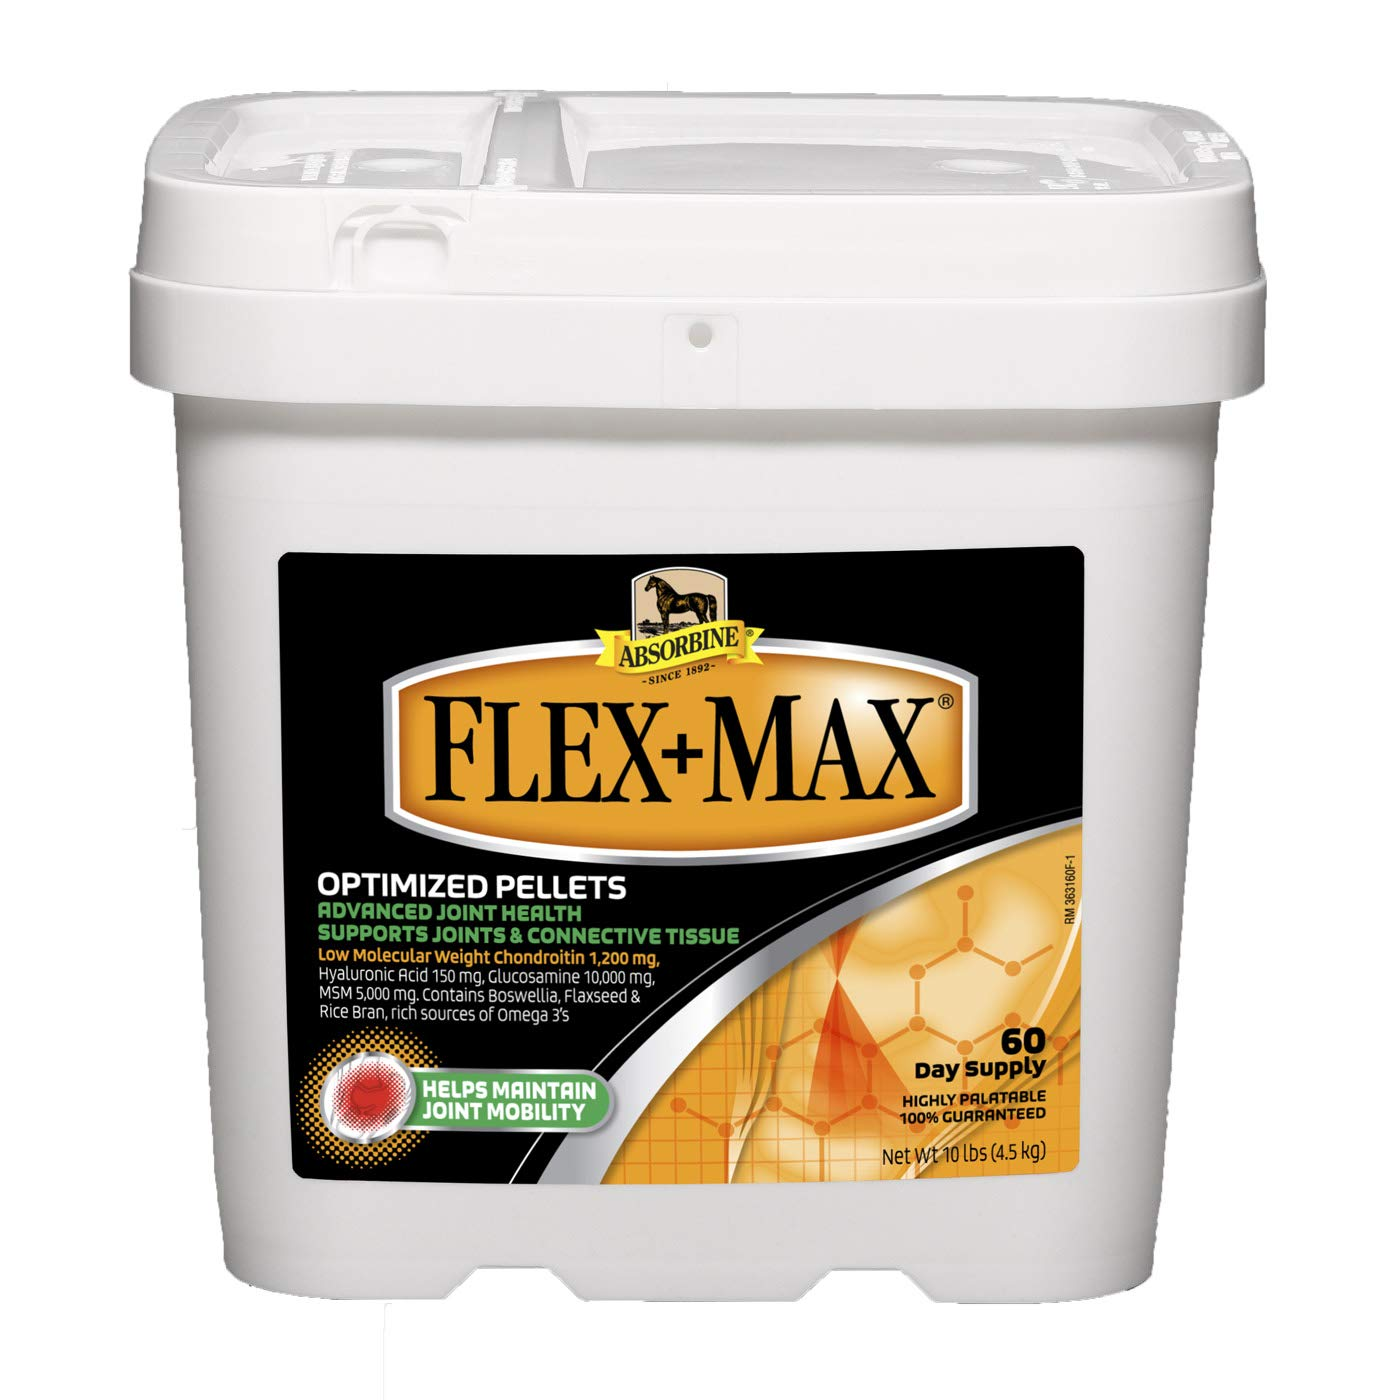 Absorbine Flex + Max Pellets 60 Day for Pets by Absorbine